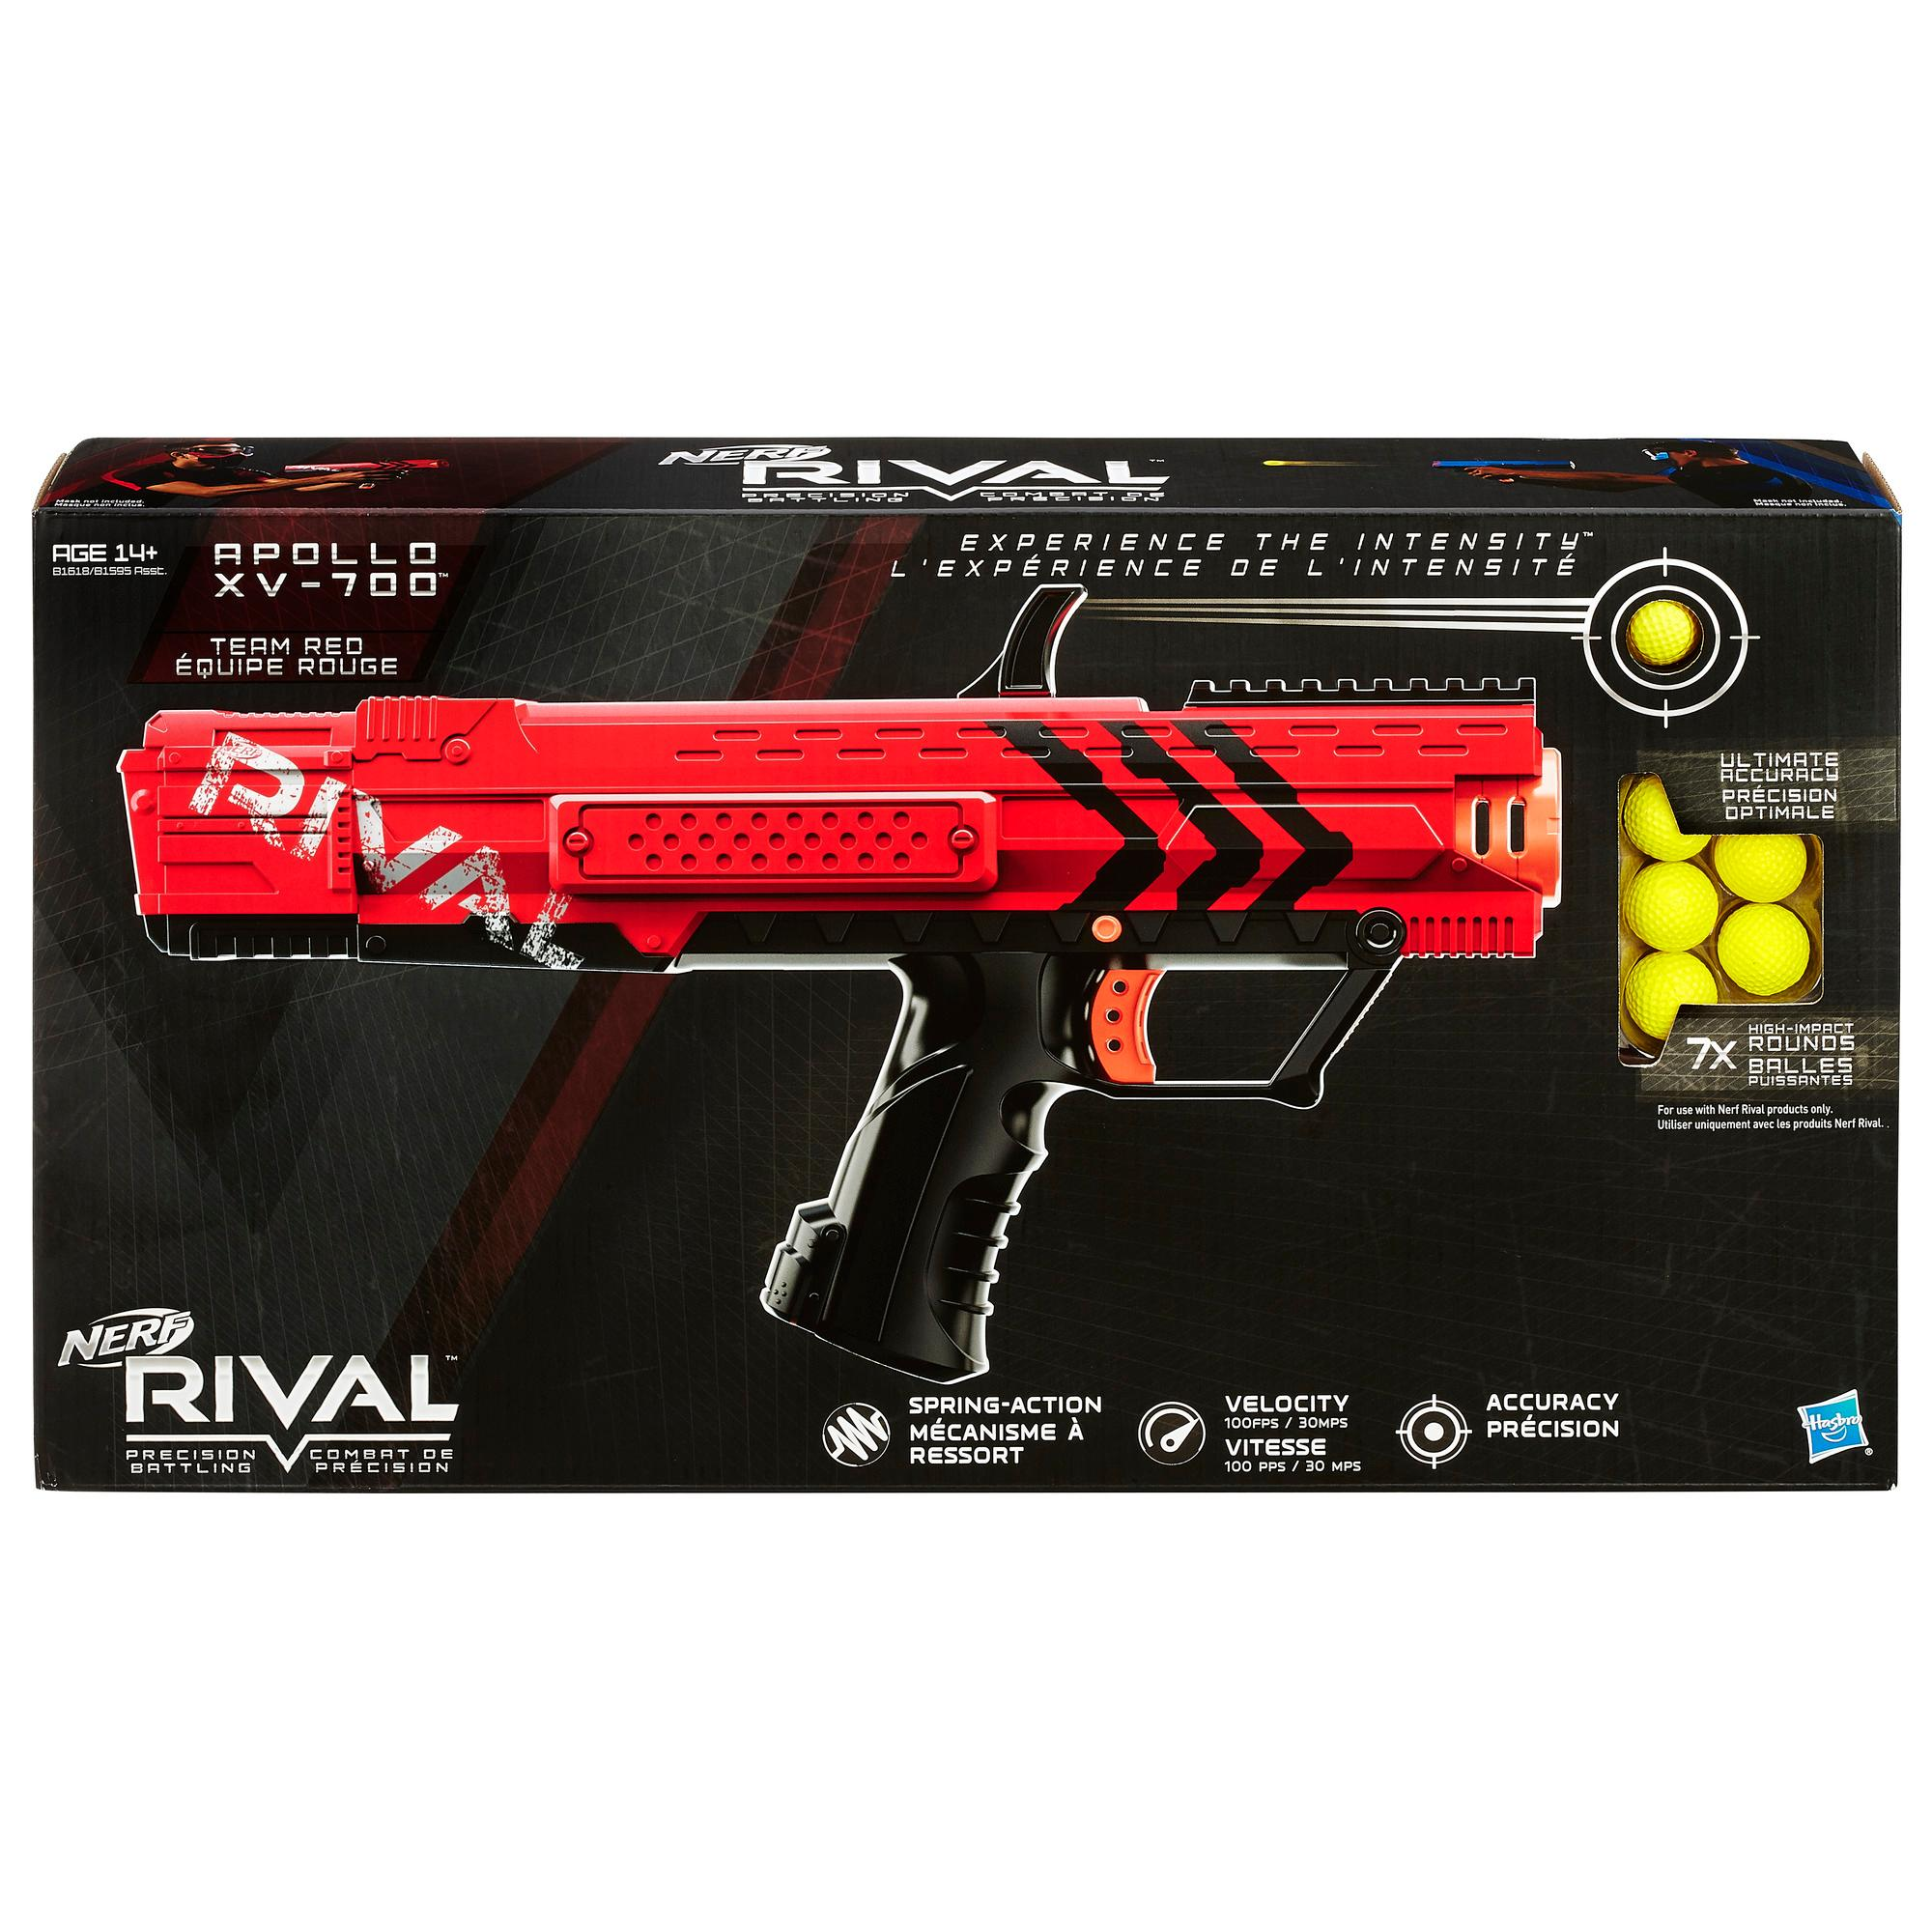 Nerf Rival Apollo XV 700 Read more View larger